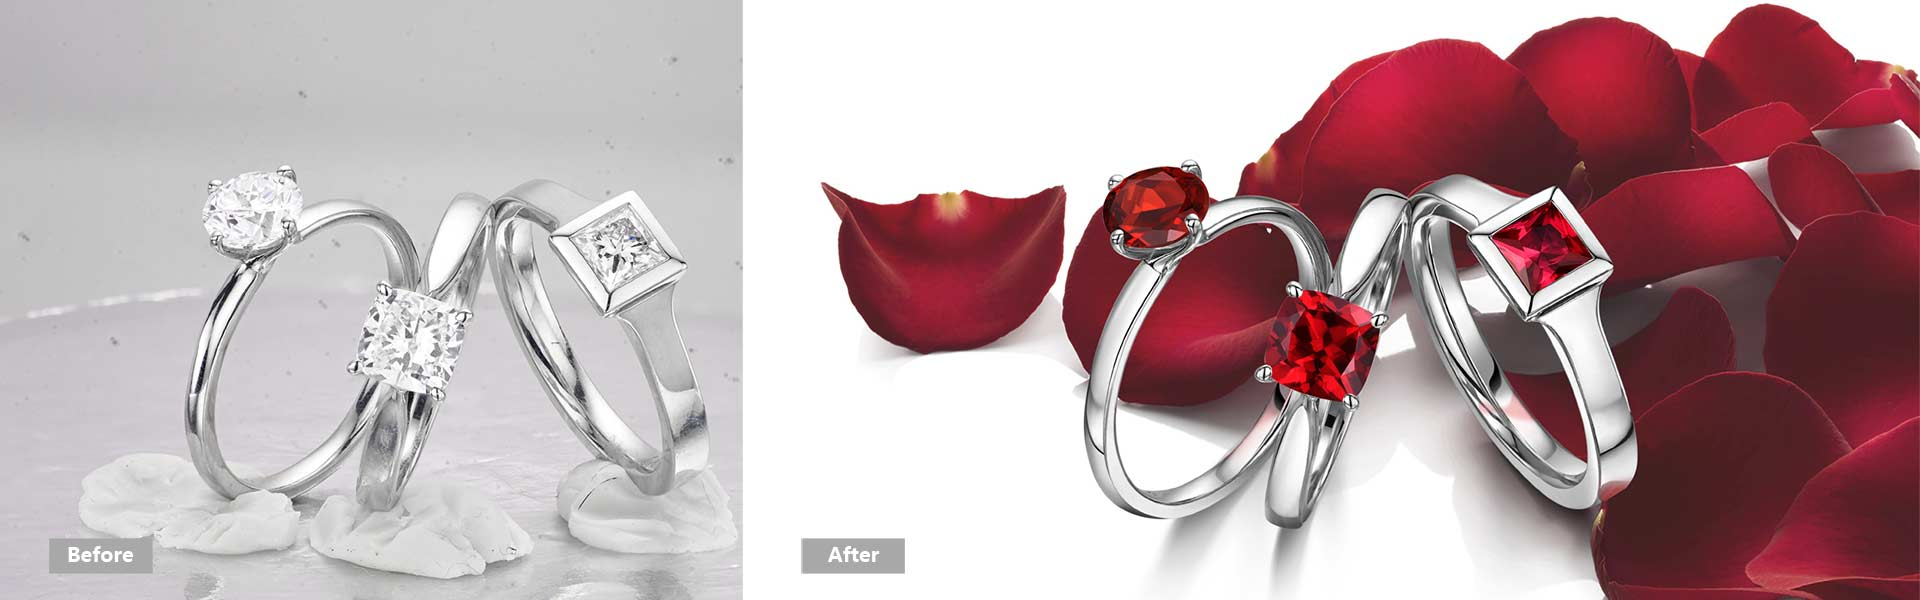 high end jewelry retouching,,merge ring to rose background